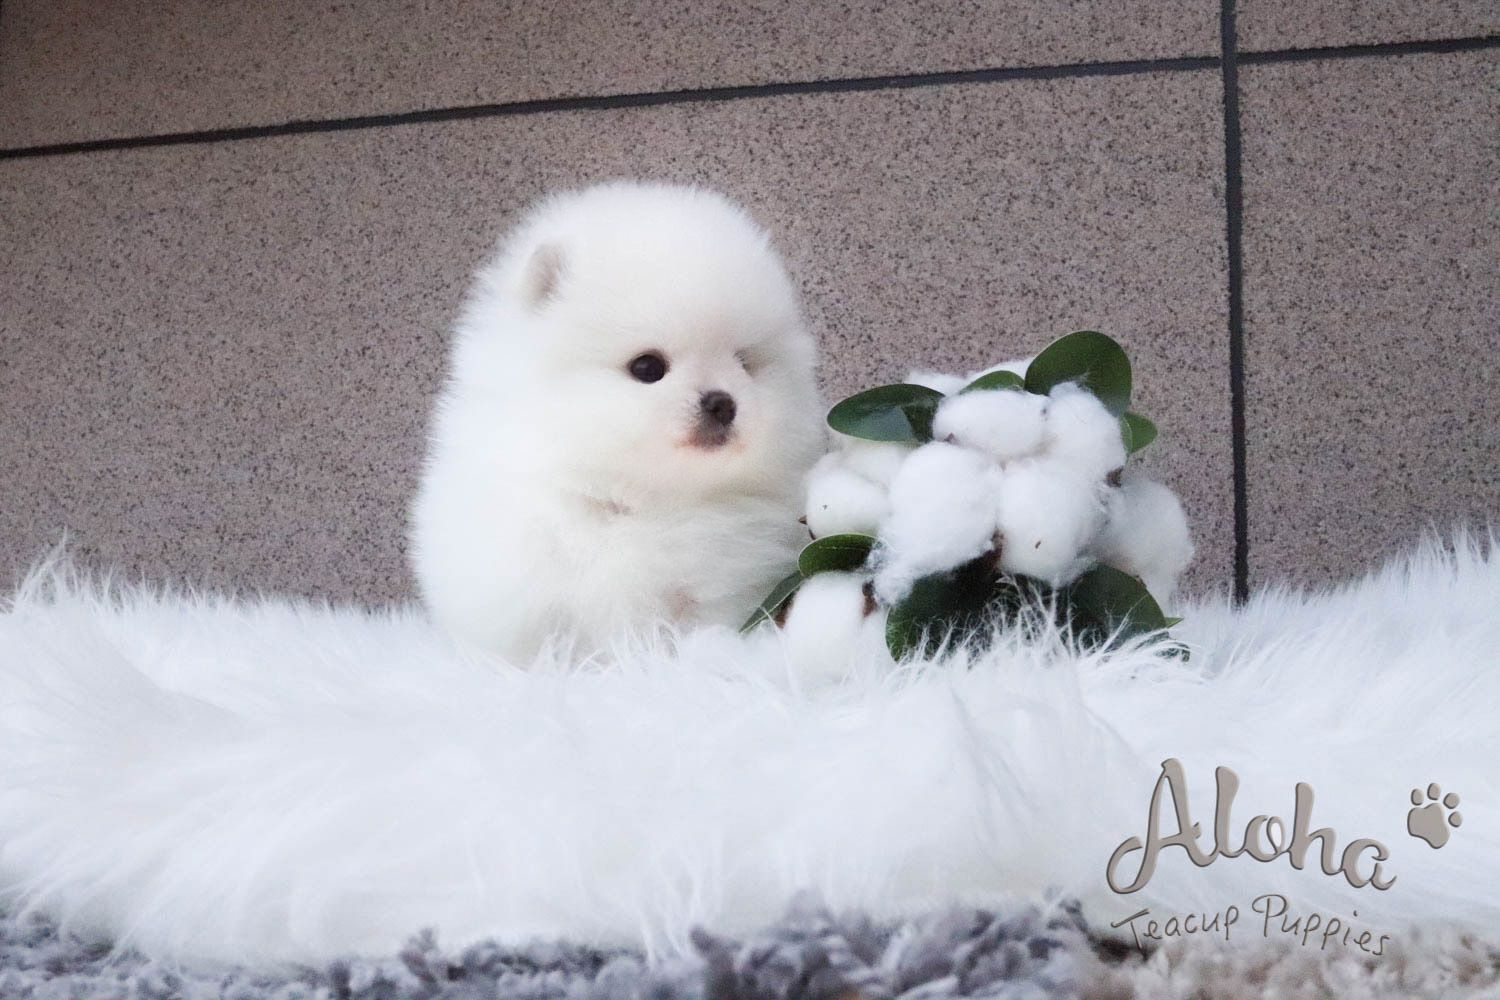 Pomeranian Rolly Teacup Puppies in 2020 Puppy images